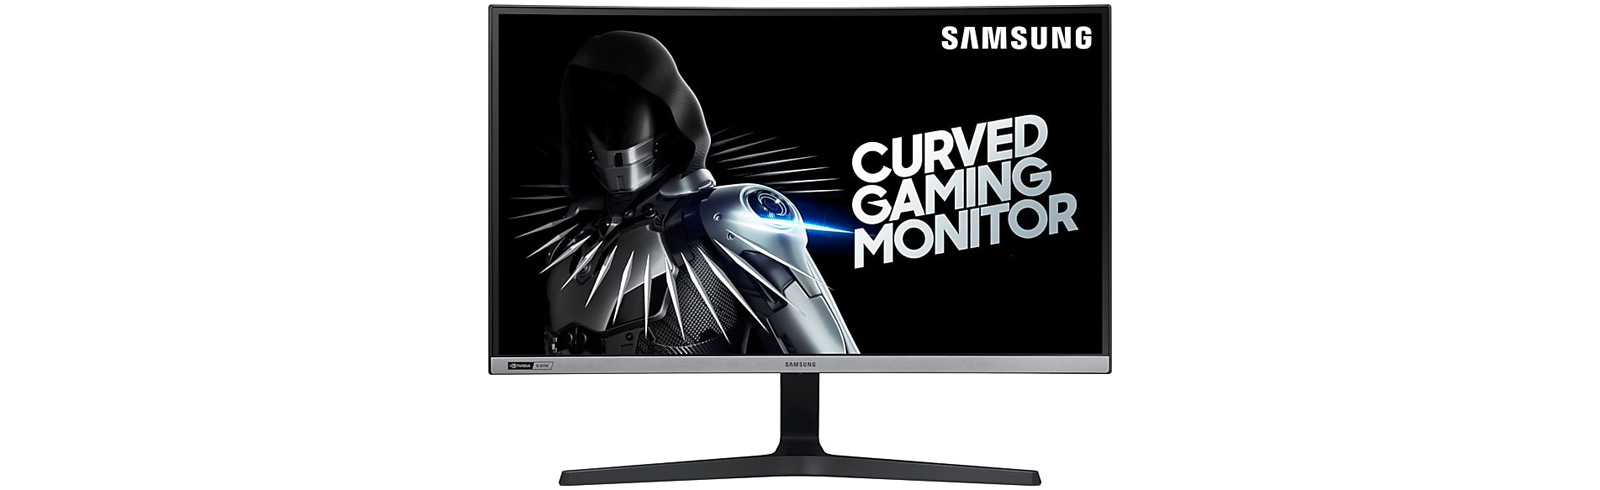 Samsung unveils a 27-inch curved gaming monitor with 240 Hz refresh rate